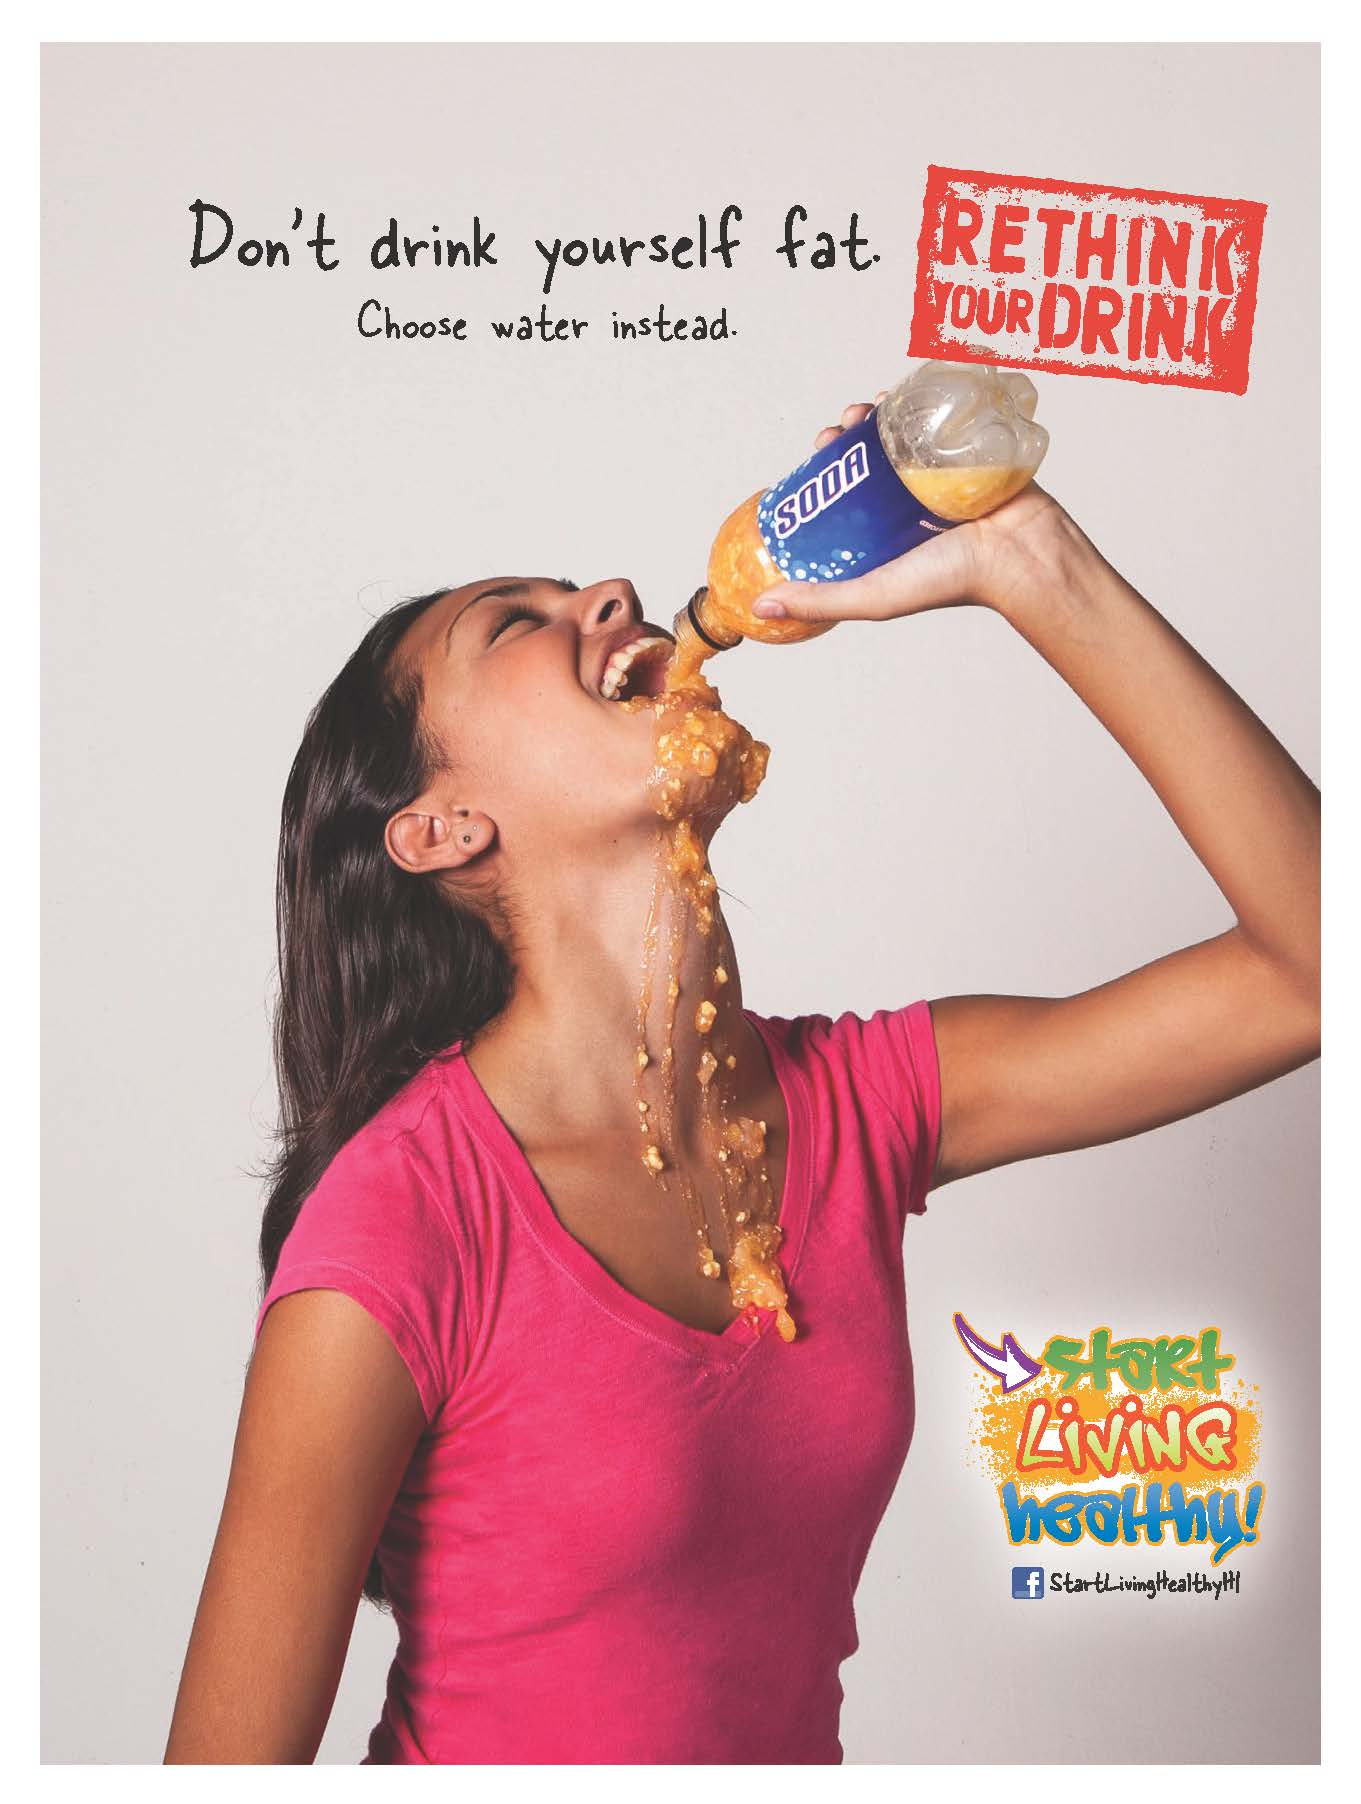 rethink your drink Minneapolis department of health h as launched a new campaign – rethink your drink, every sip counts rethink your drink is a health campaign providing education on healthier beverage options for students and staff to reduce the intake of sugar, as well as the impact of sugar sweetened beverages on health.